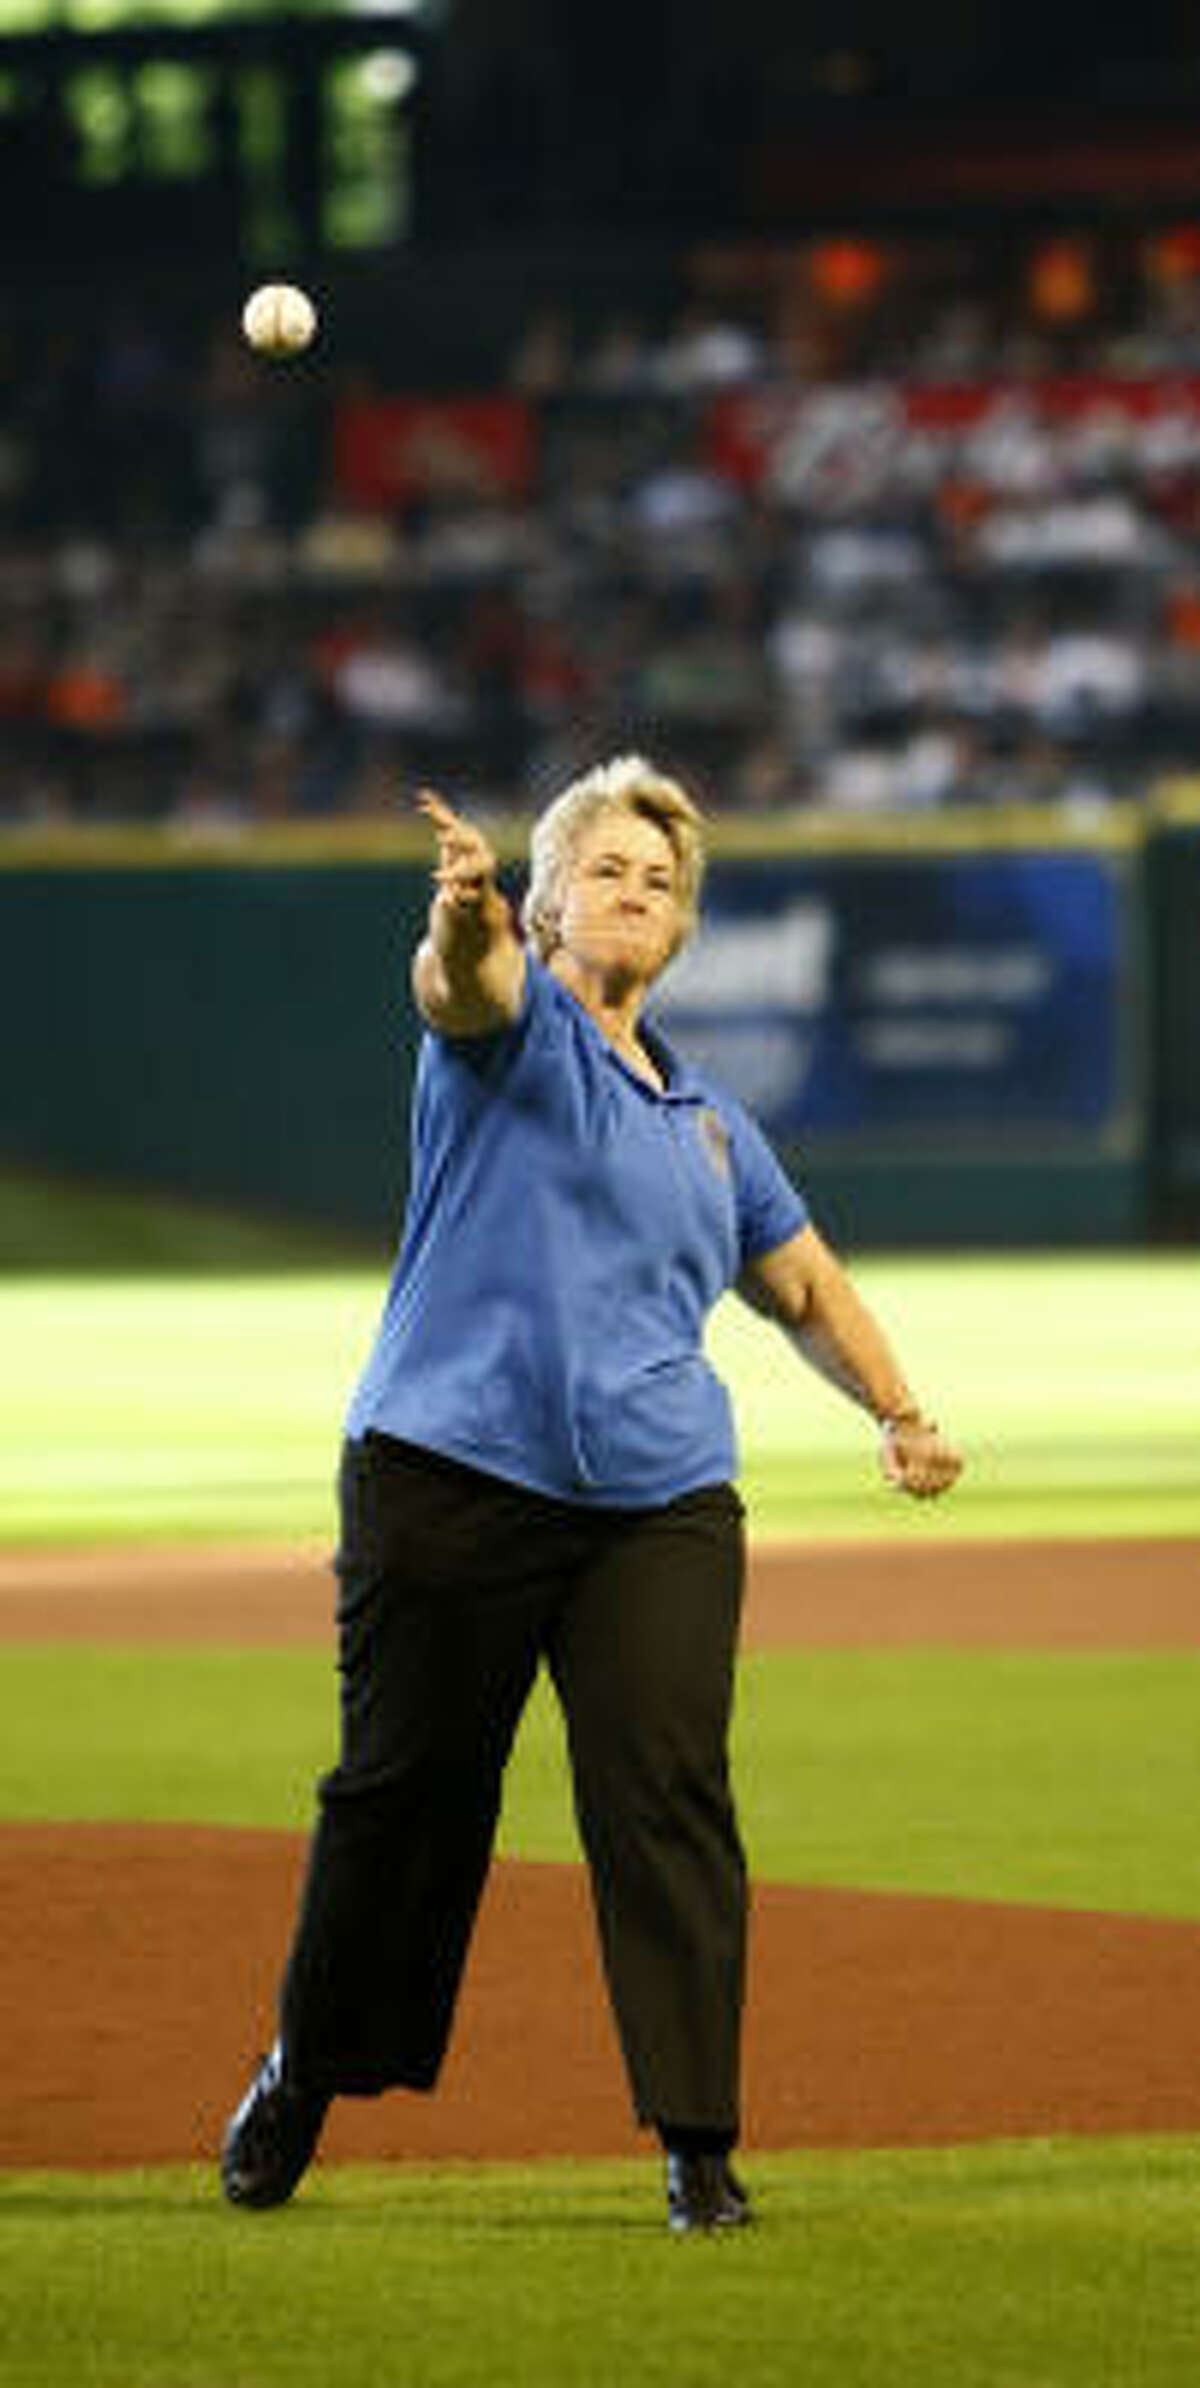 Mayor Annise Parker throws out the ceremonial first pitch.